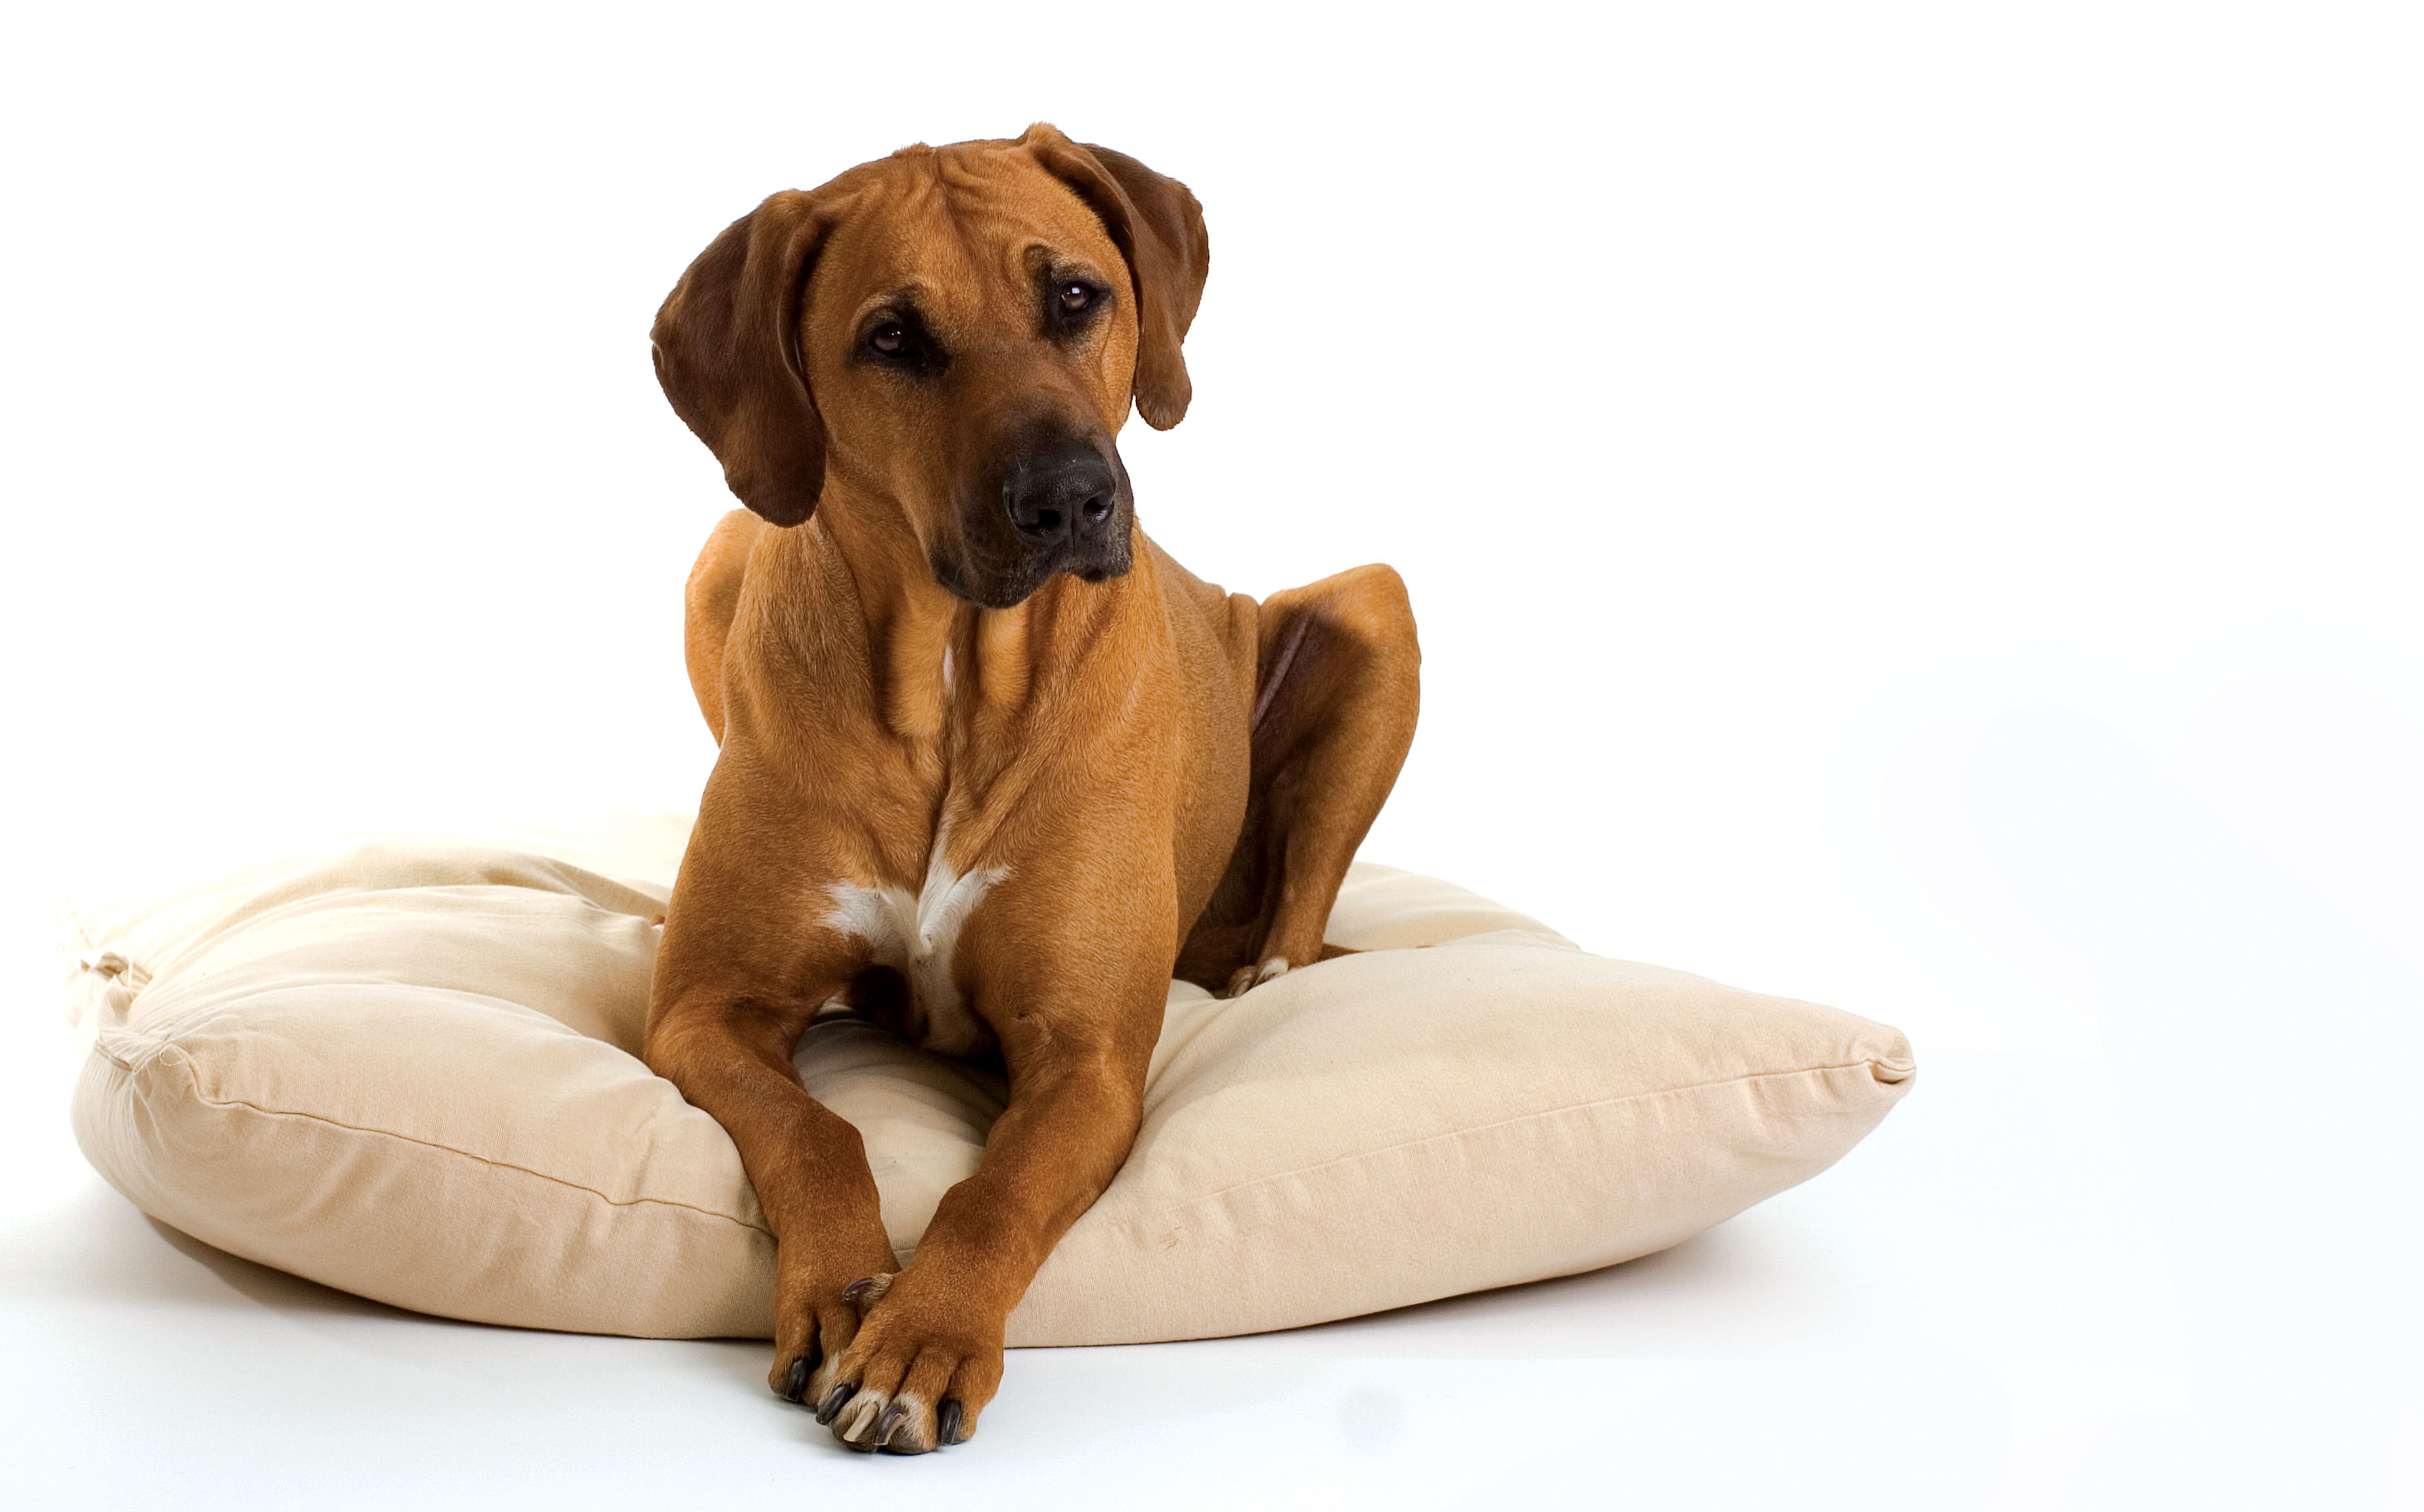 What Is the Most Durable Flooring for Dogs